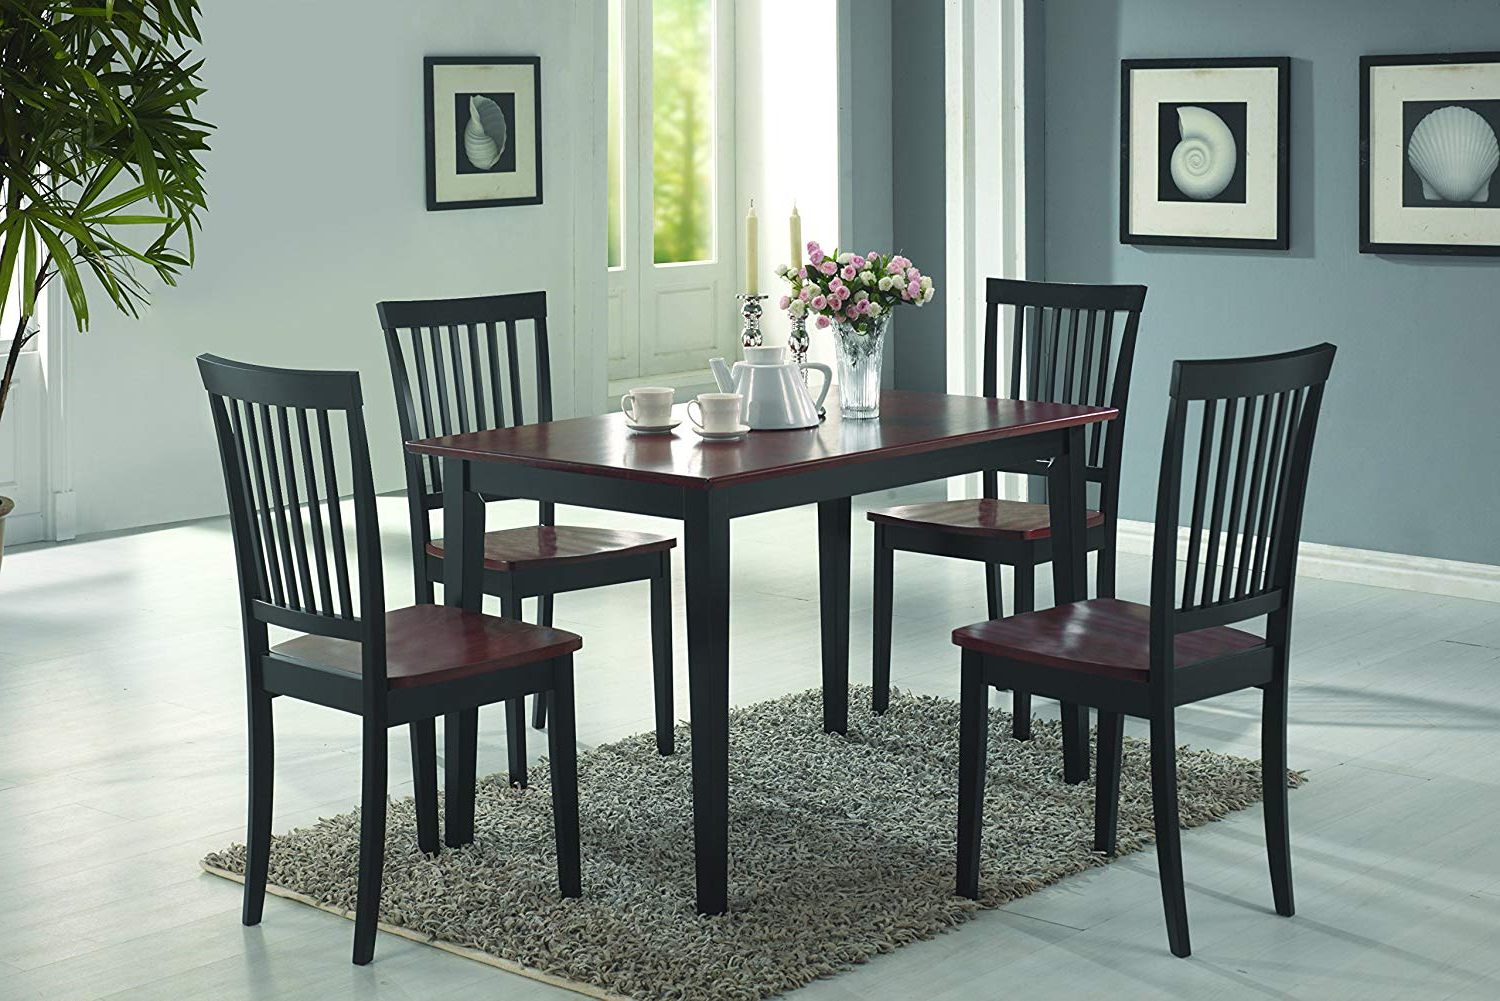 Most Recent Amazon – Coaster 5 Piece Dining Set, Table Top With 4 Chairs For Kieffer 5 Piece Dining Sets (View 20 of 25)